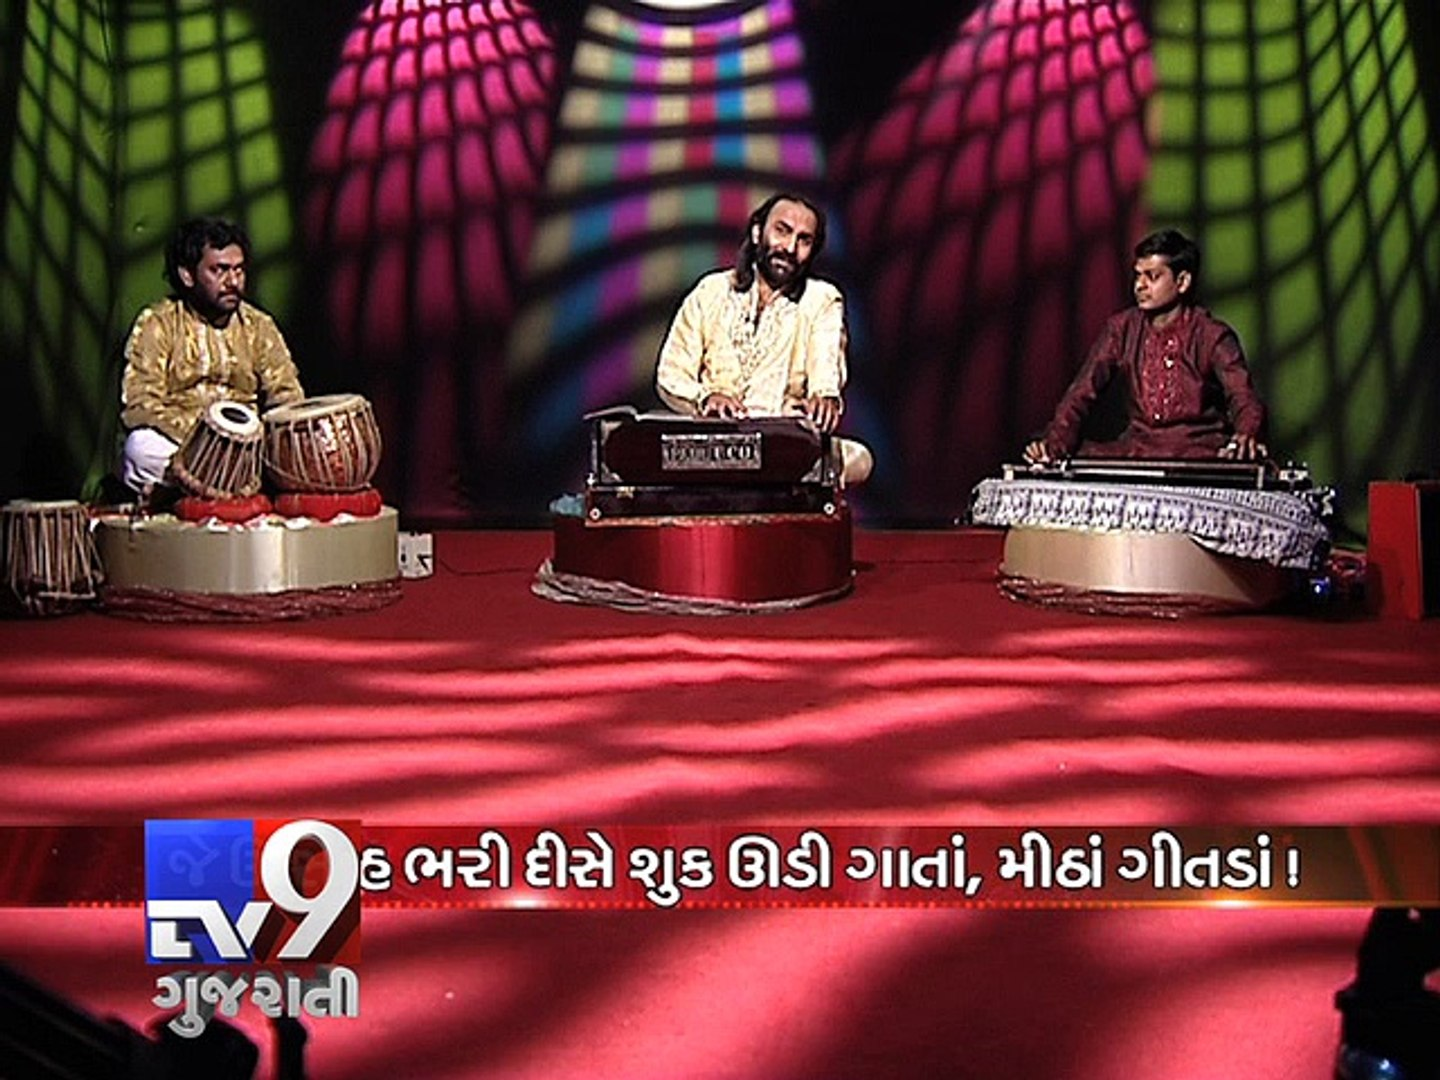 'HU GUJARATI' with Sairam Dave to mark International Mother Tongue Day, Part 3 - Tv9 Gujar